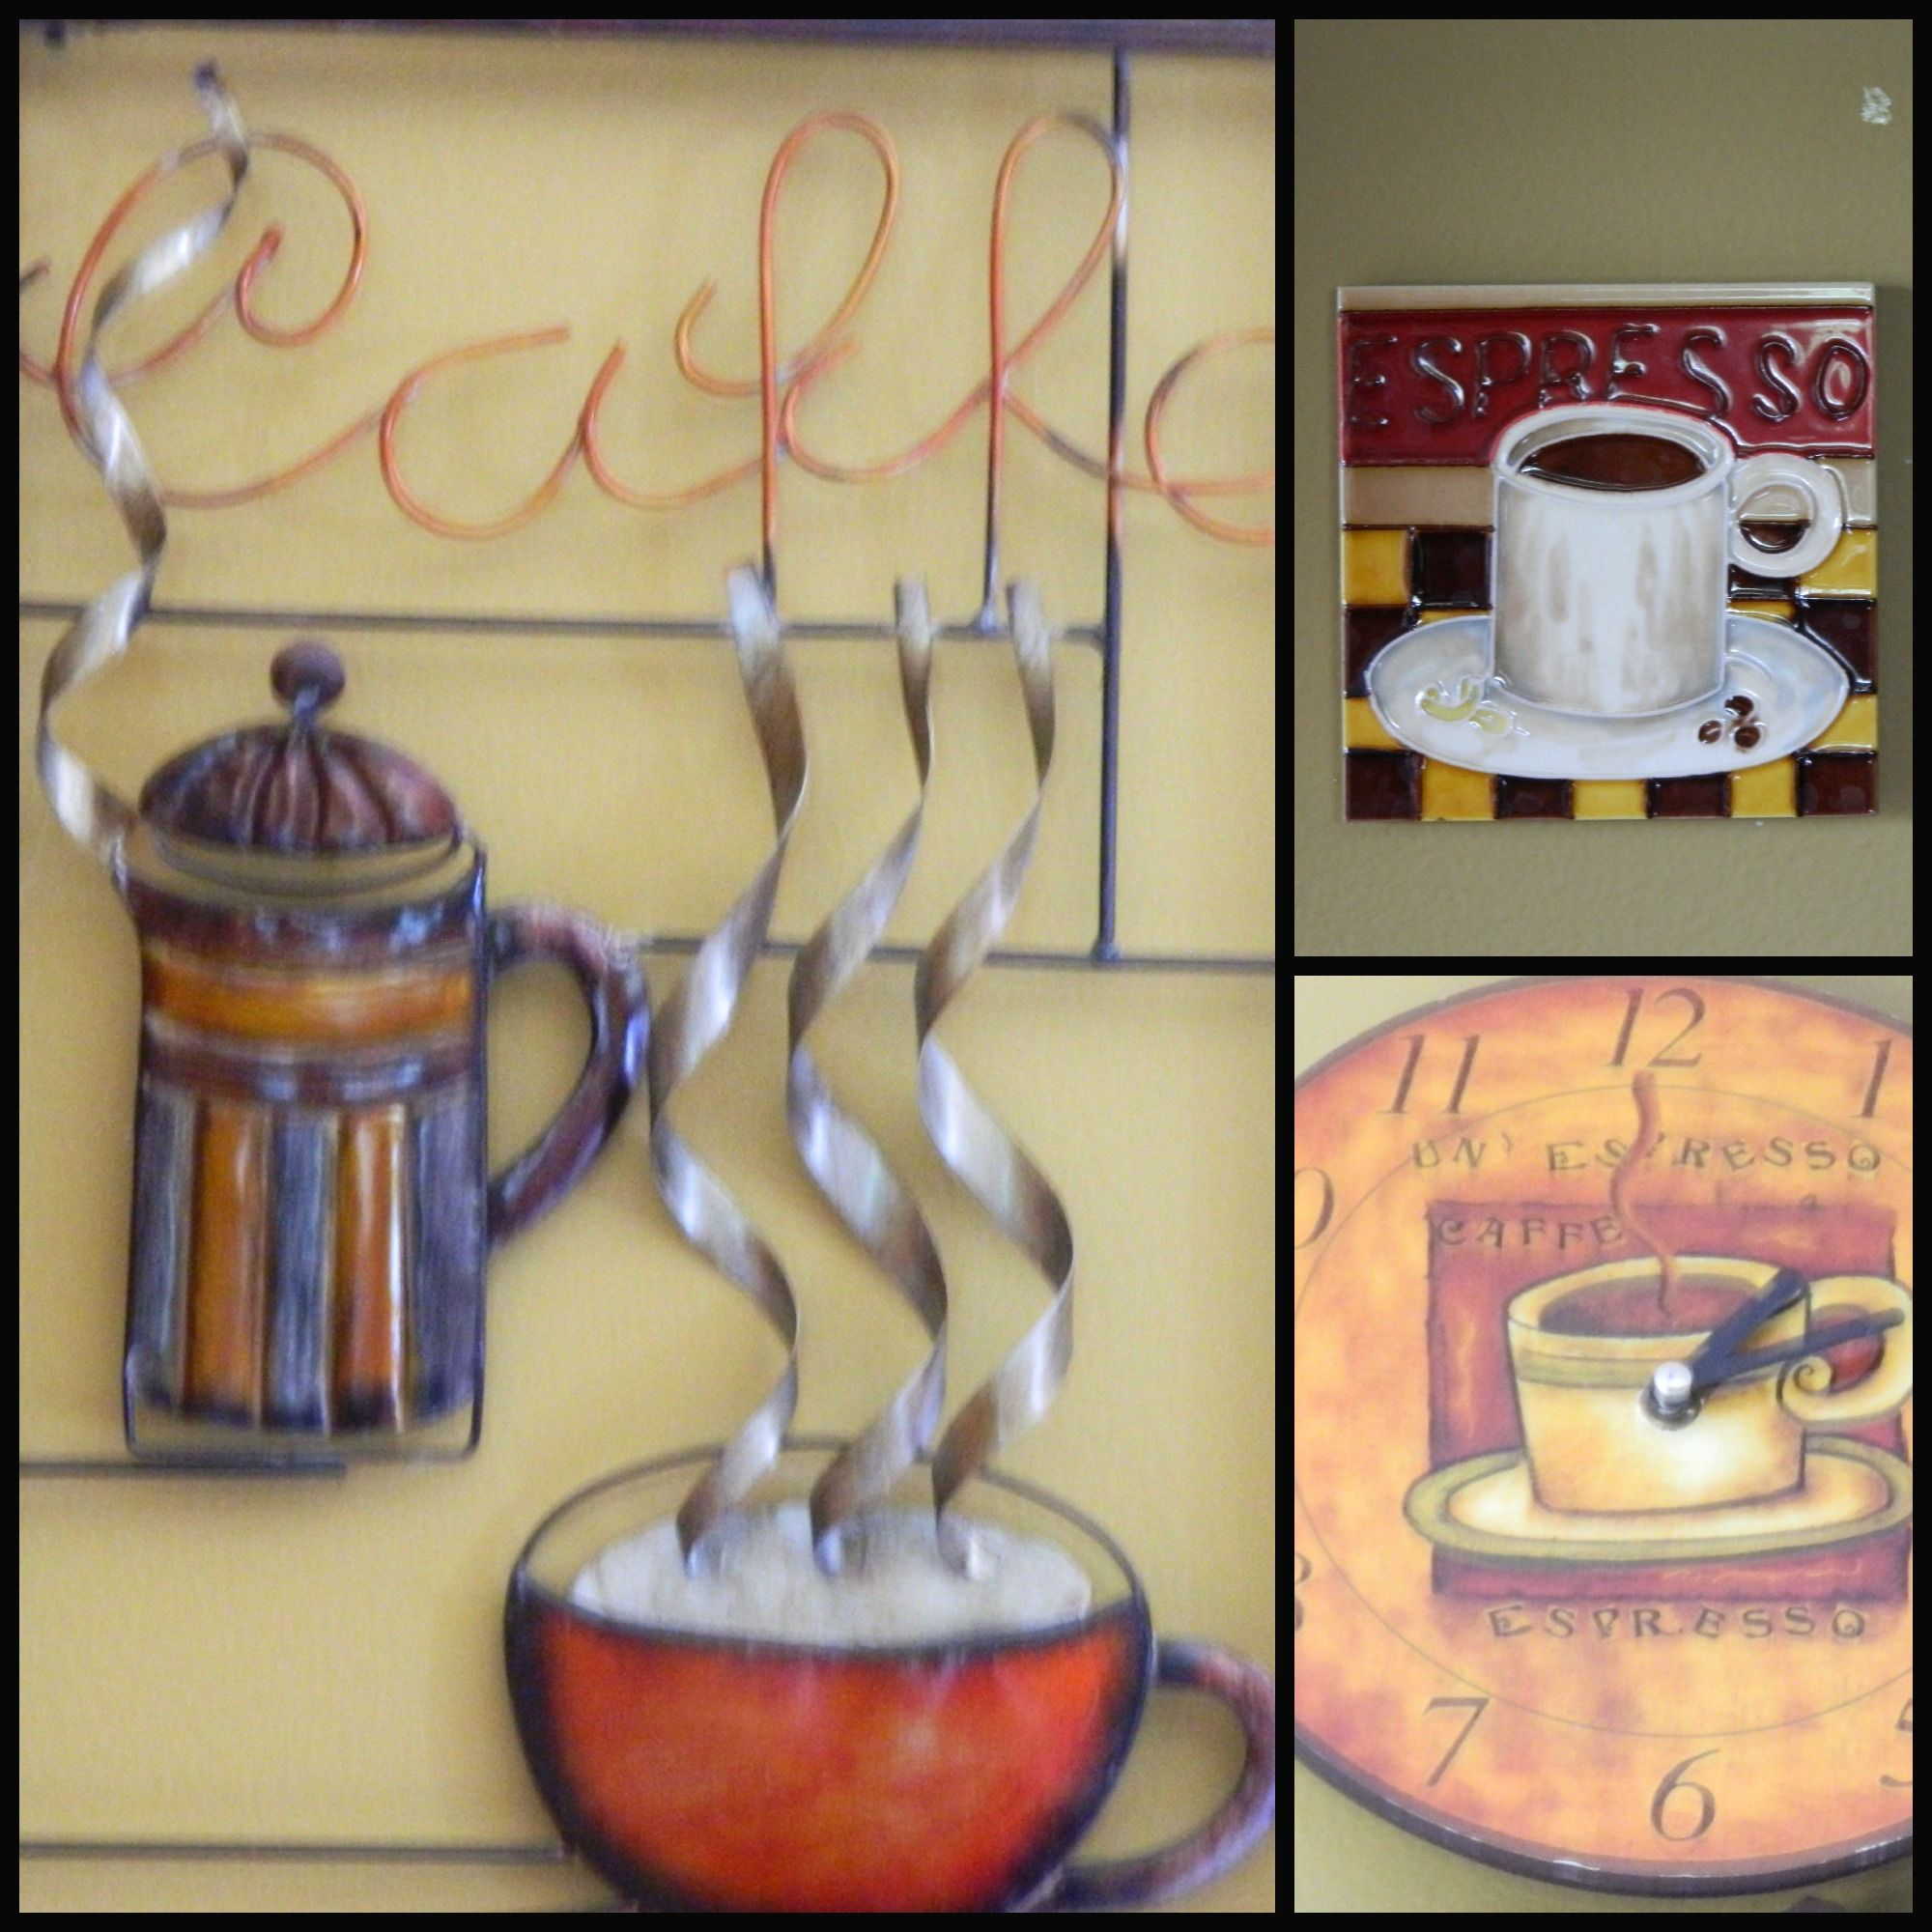 Stunning Coffee Wall Decor Kitchen Pictures Inspiration - The Wall ...